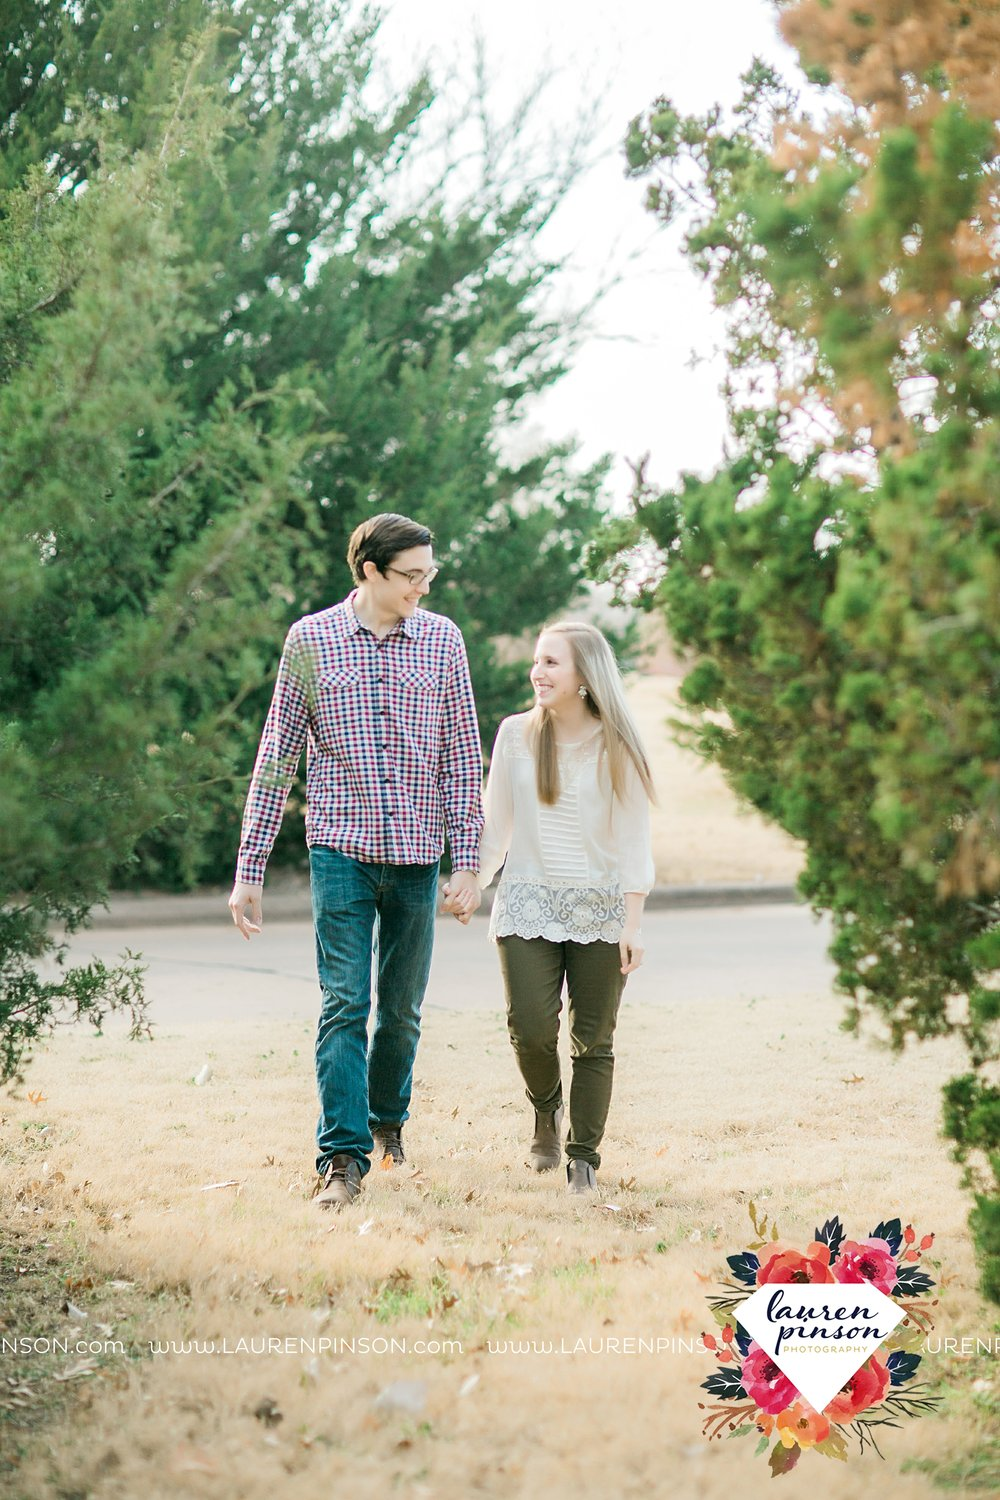 katie-and-joshua-frank-and-joes-wichita-falls-engagement-session-lake-wichita-park-lauren-pinson-photography-00013.jpg